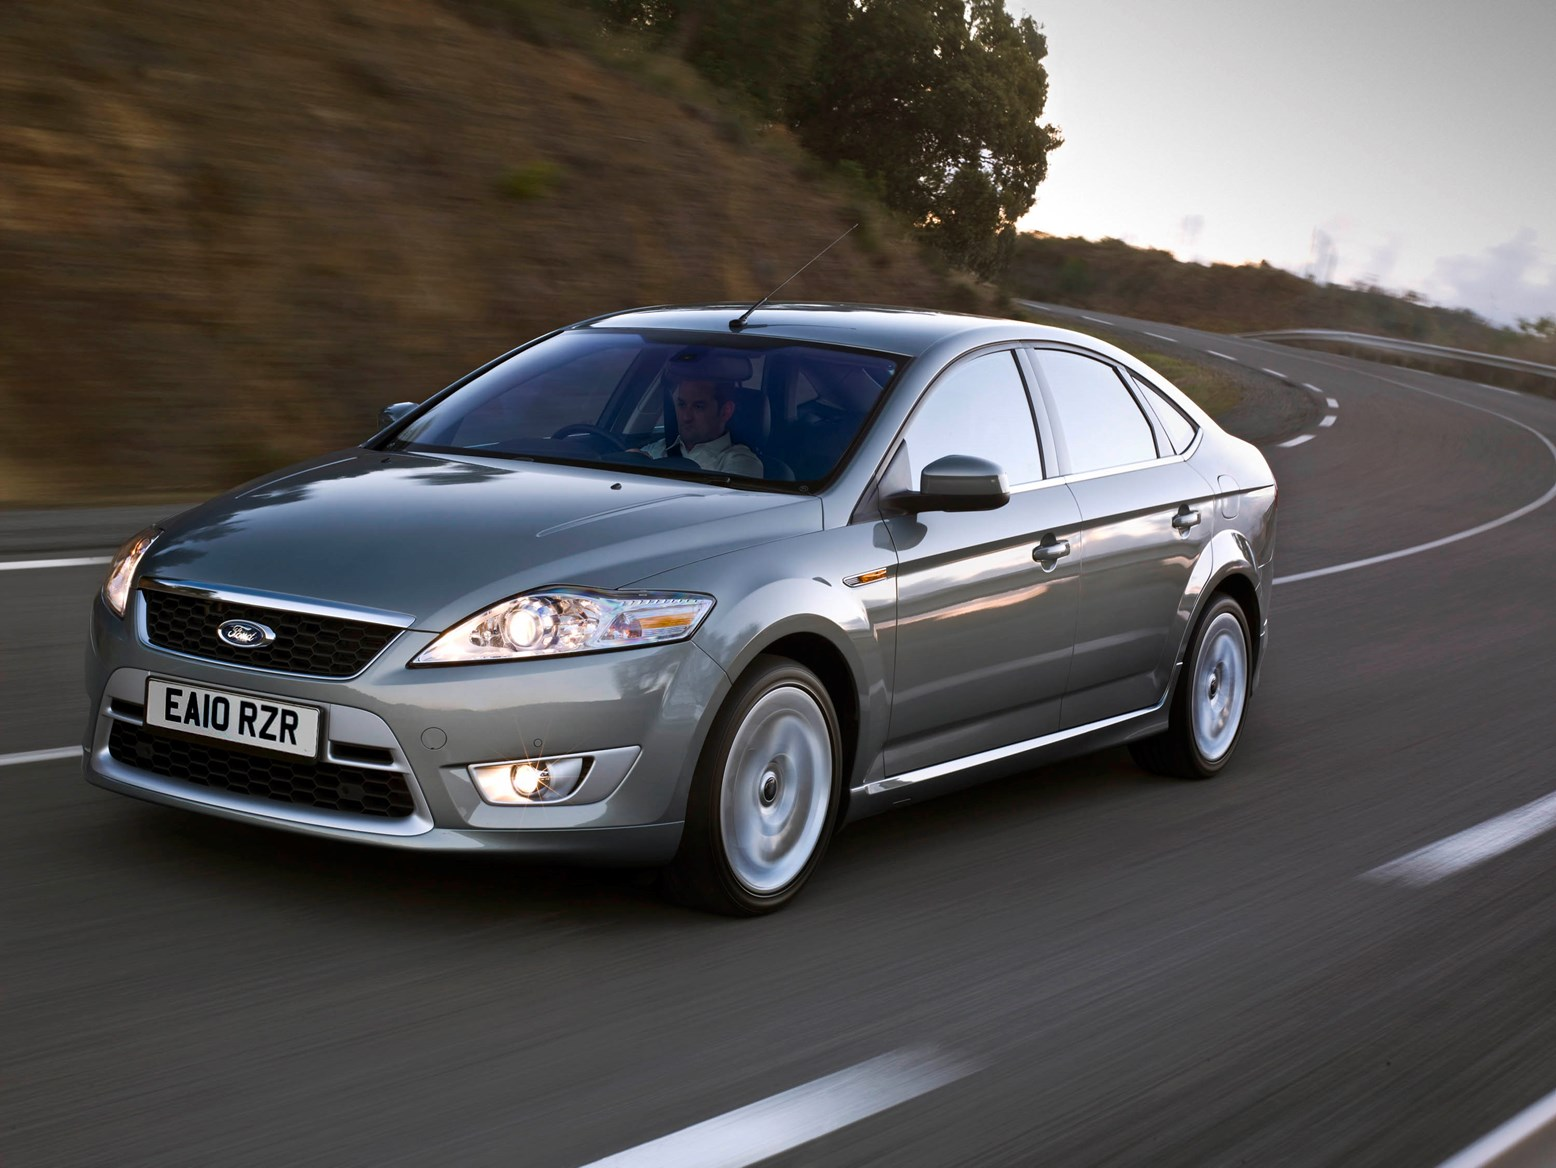 2011 Ford Mondeo #23